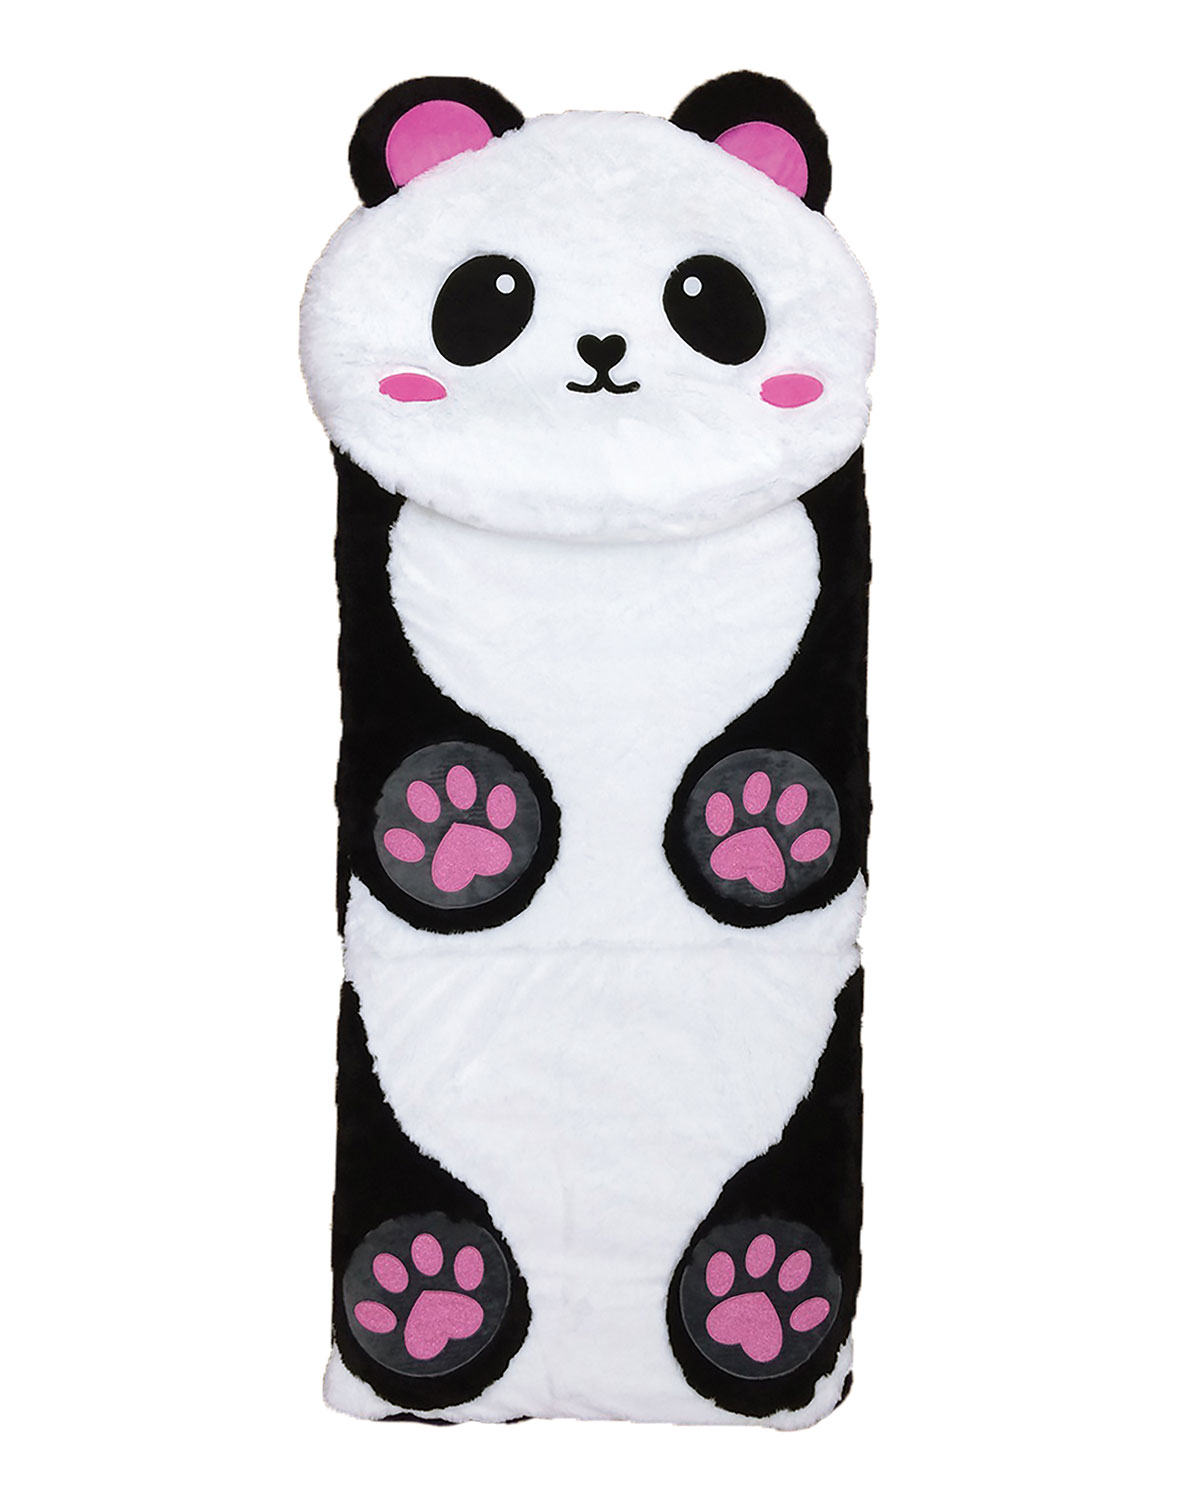 Kids' Panda Sleeping Bag